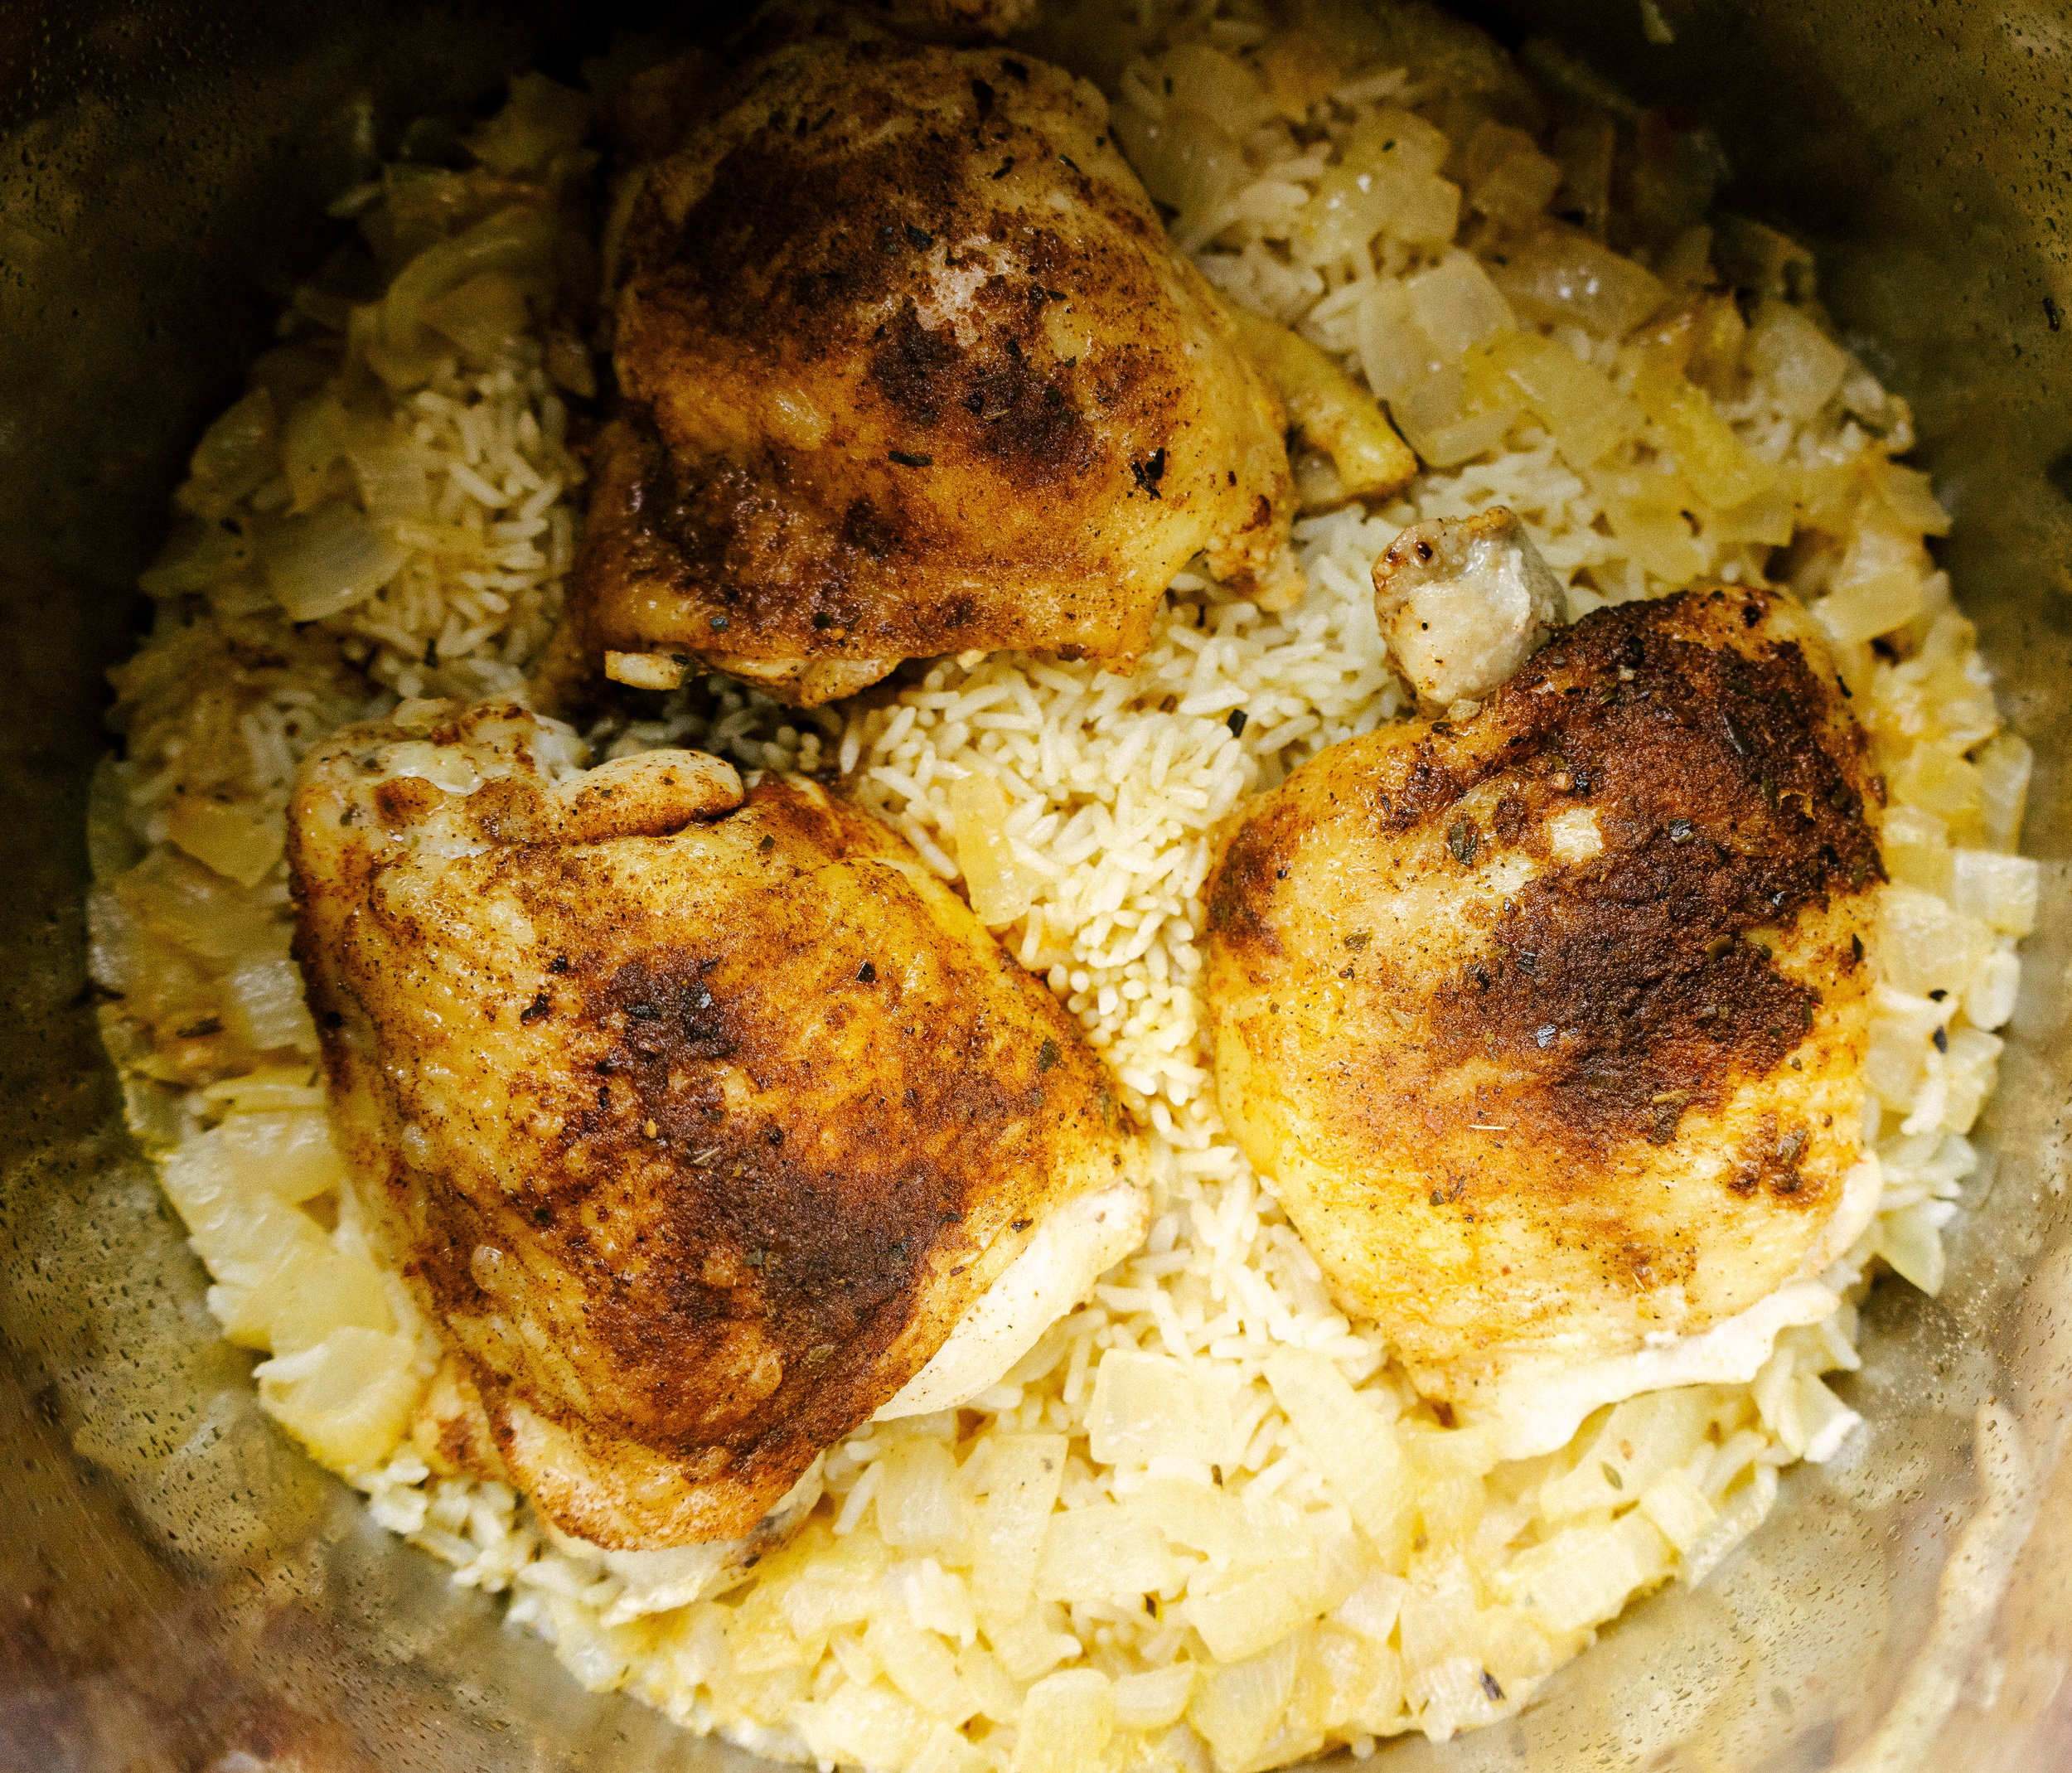 Instant pot seasoned chicken and rice is an easy and healthy one pan meal. This delicious dinner comes together in just an hour with basic ingredients and minimal clean up.